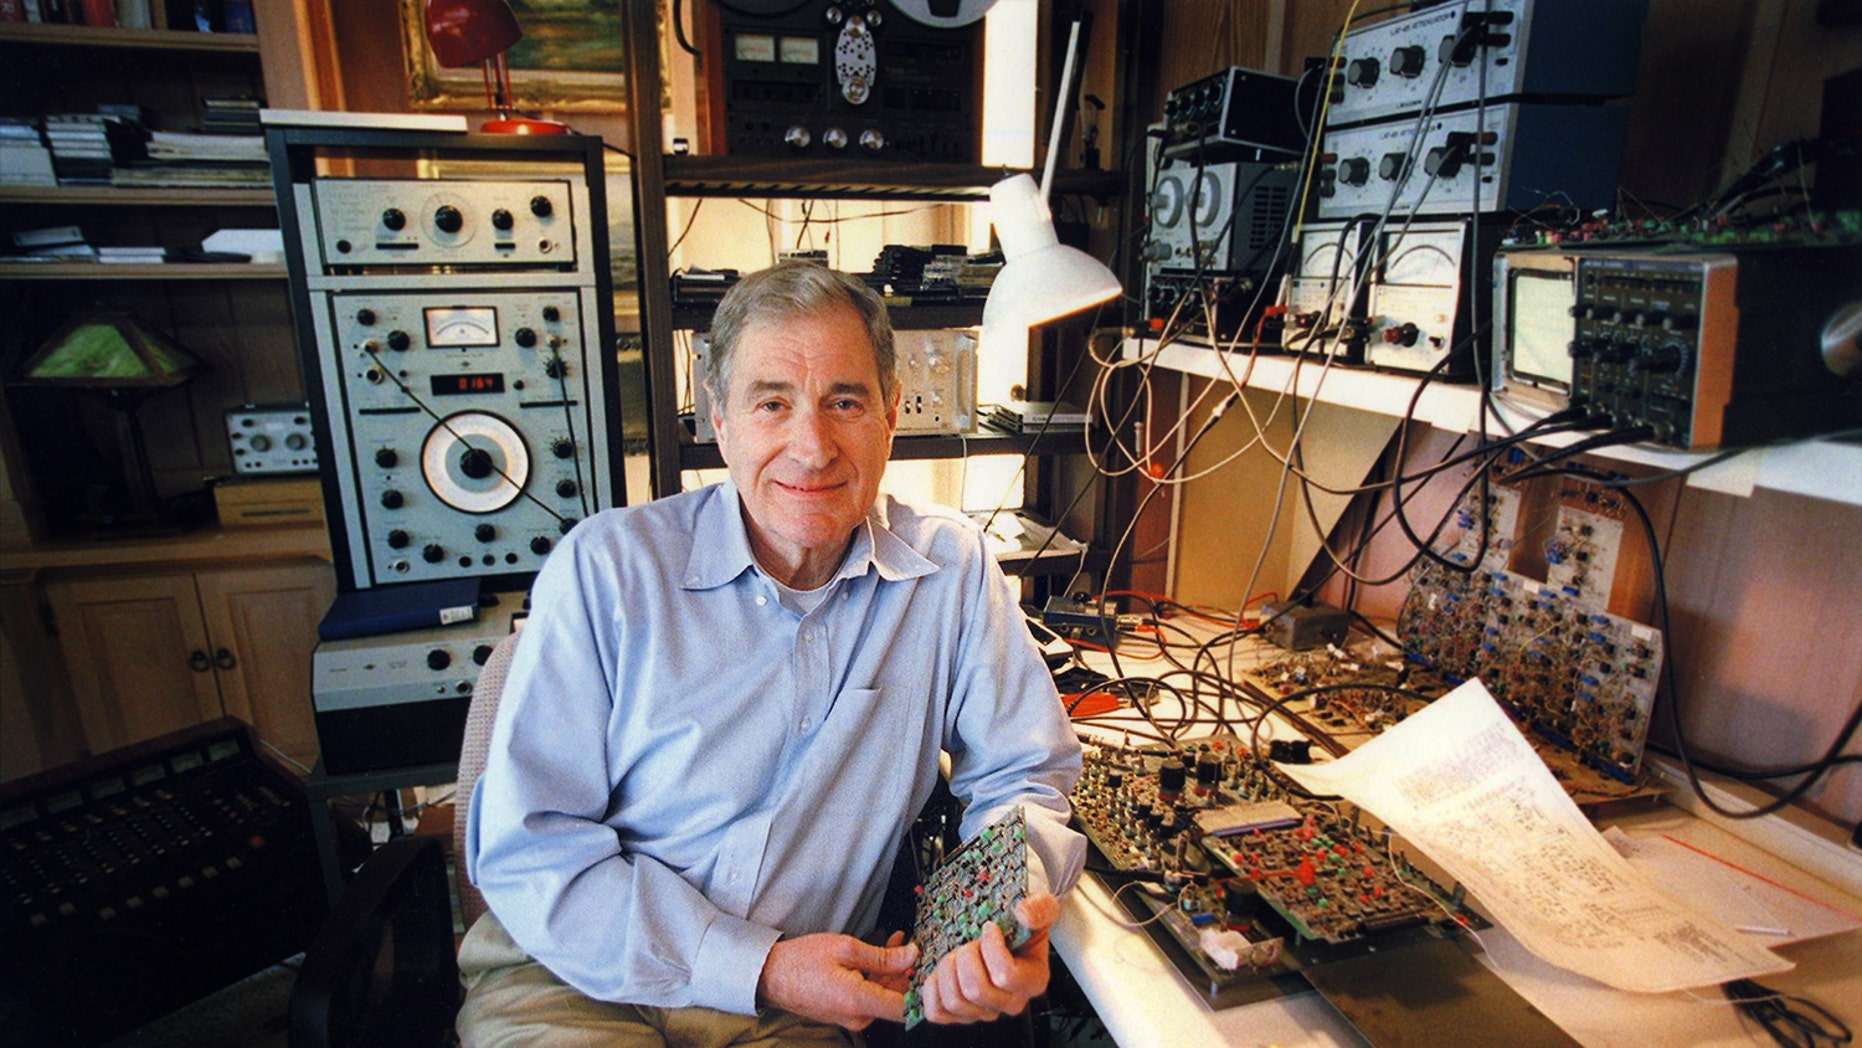 Ray Dolby in his lab